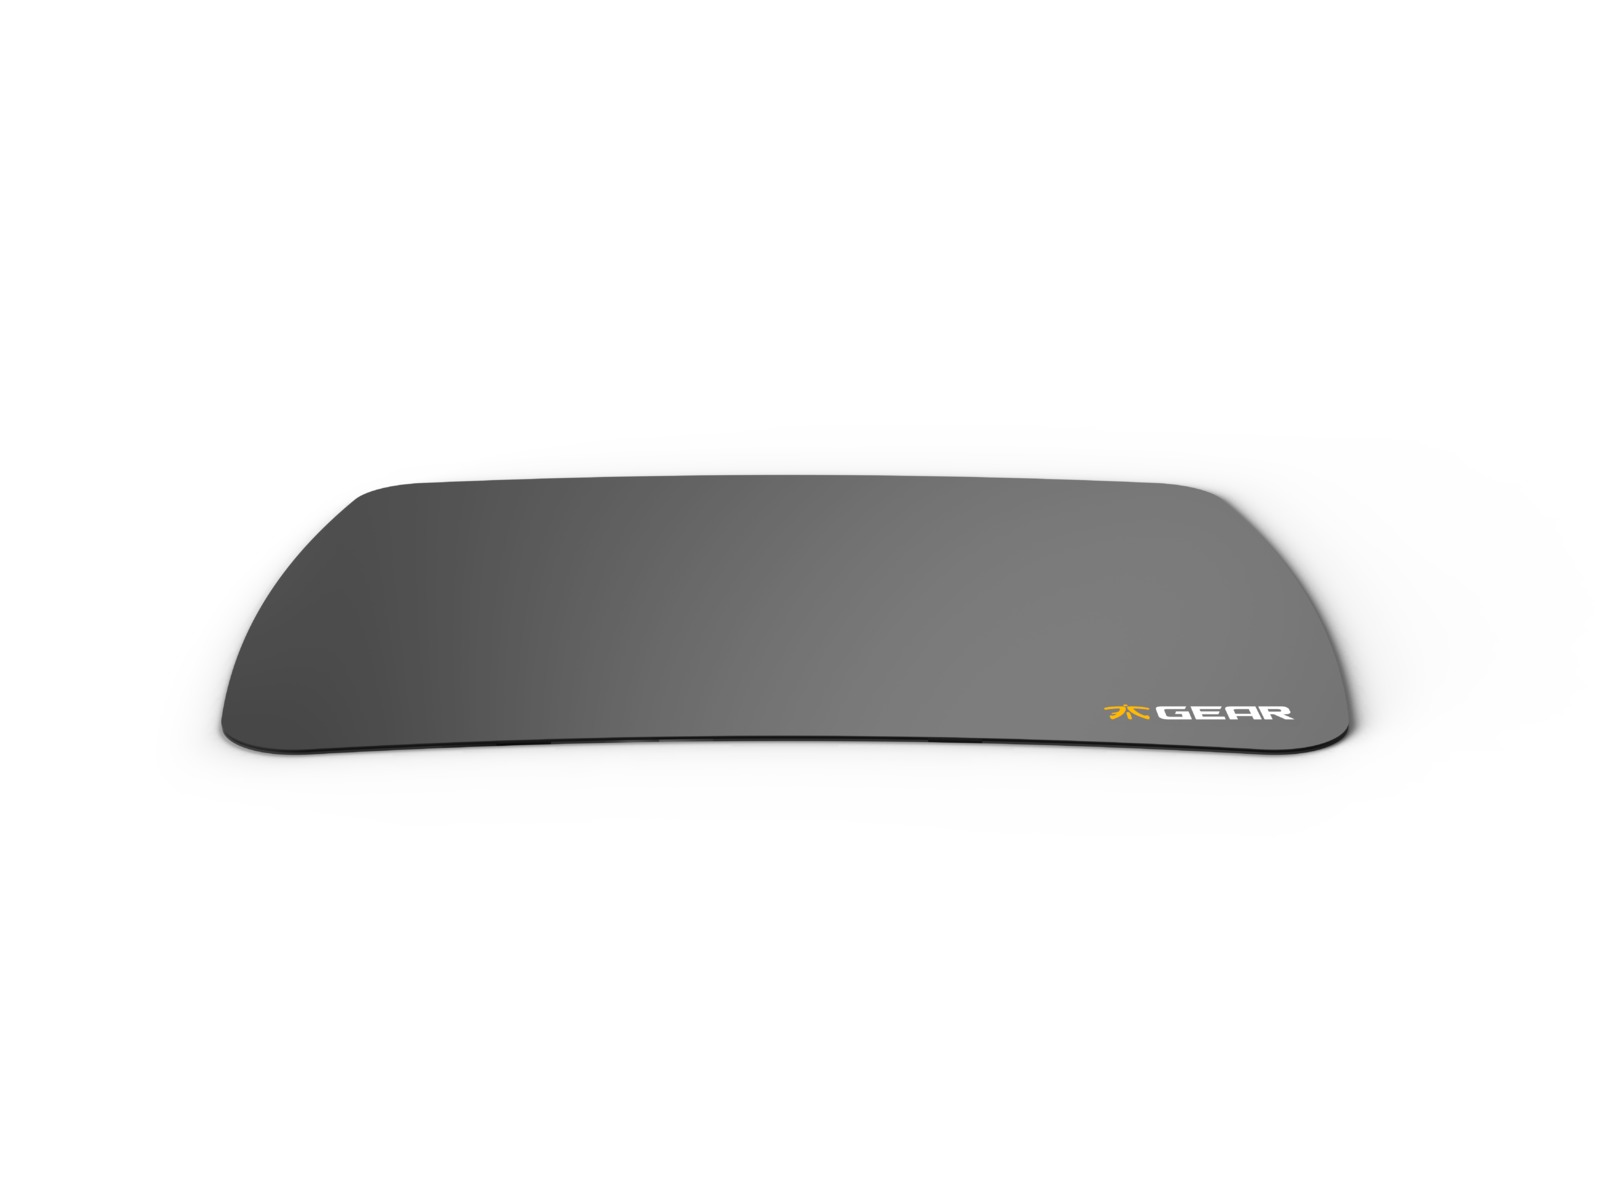 Fnatic Boost Pro Gaming Mousepad - Control XL for PC Games image